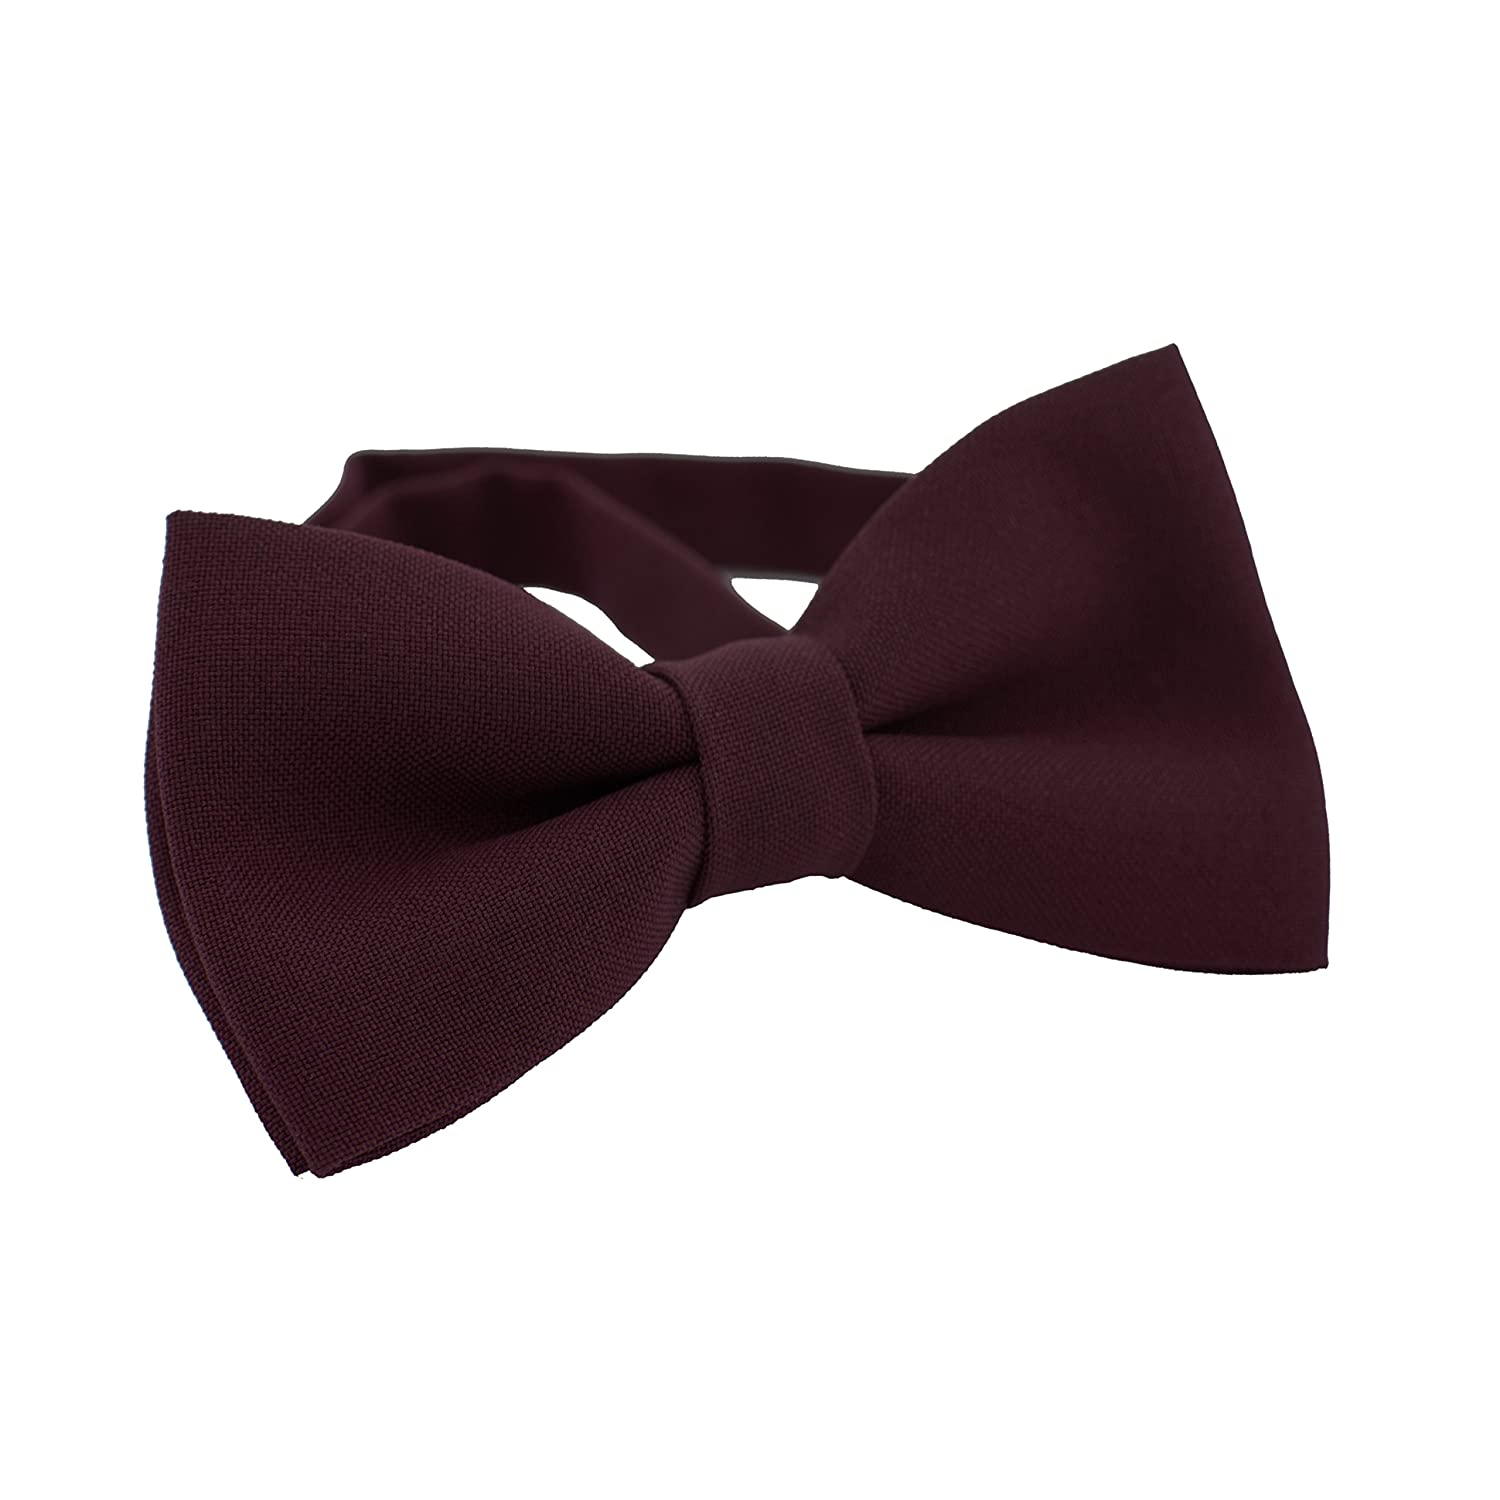 Classic Pre-Tied Bow Tie Formal Solid Tuxedo, by Bow Tie House (Medium, Lemon) 09568